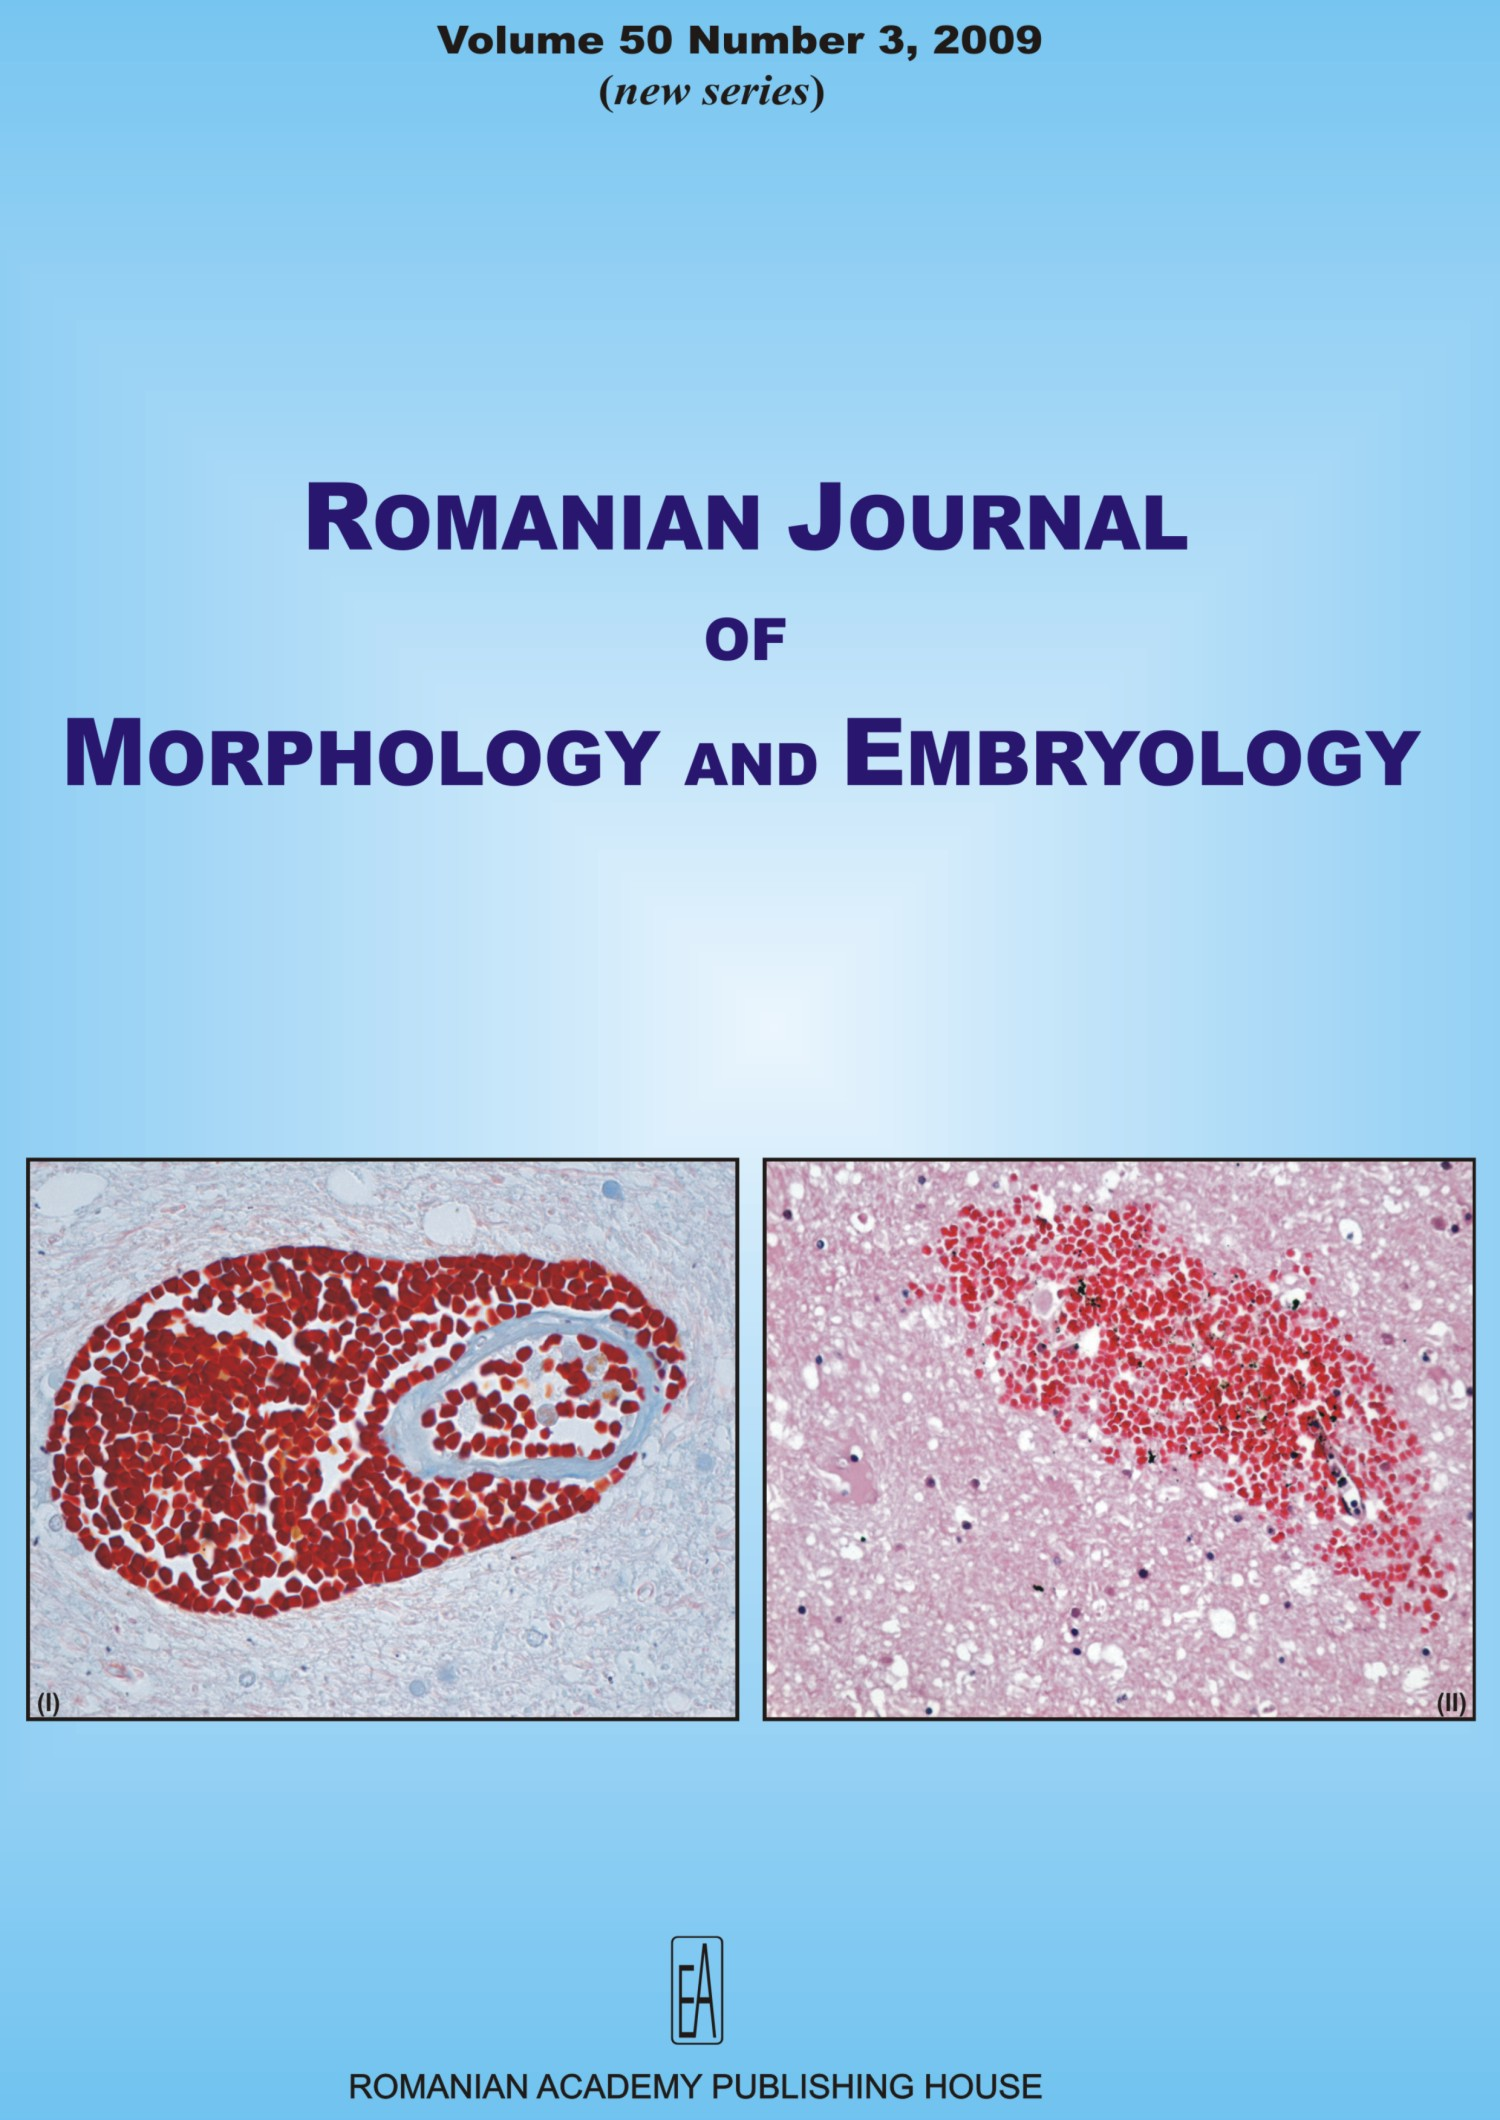 Romanian Journal of Morphology and Embryology, vol. 50 no. 3, 2009